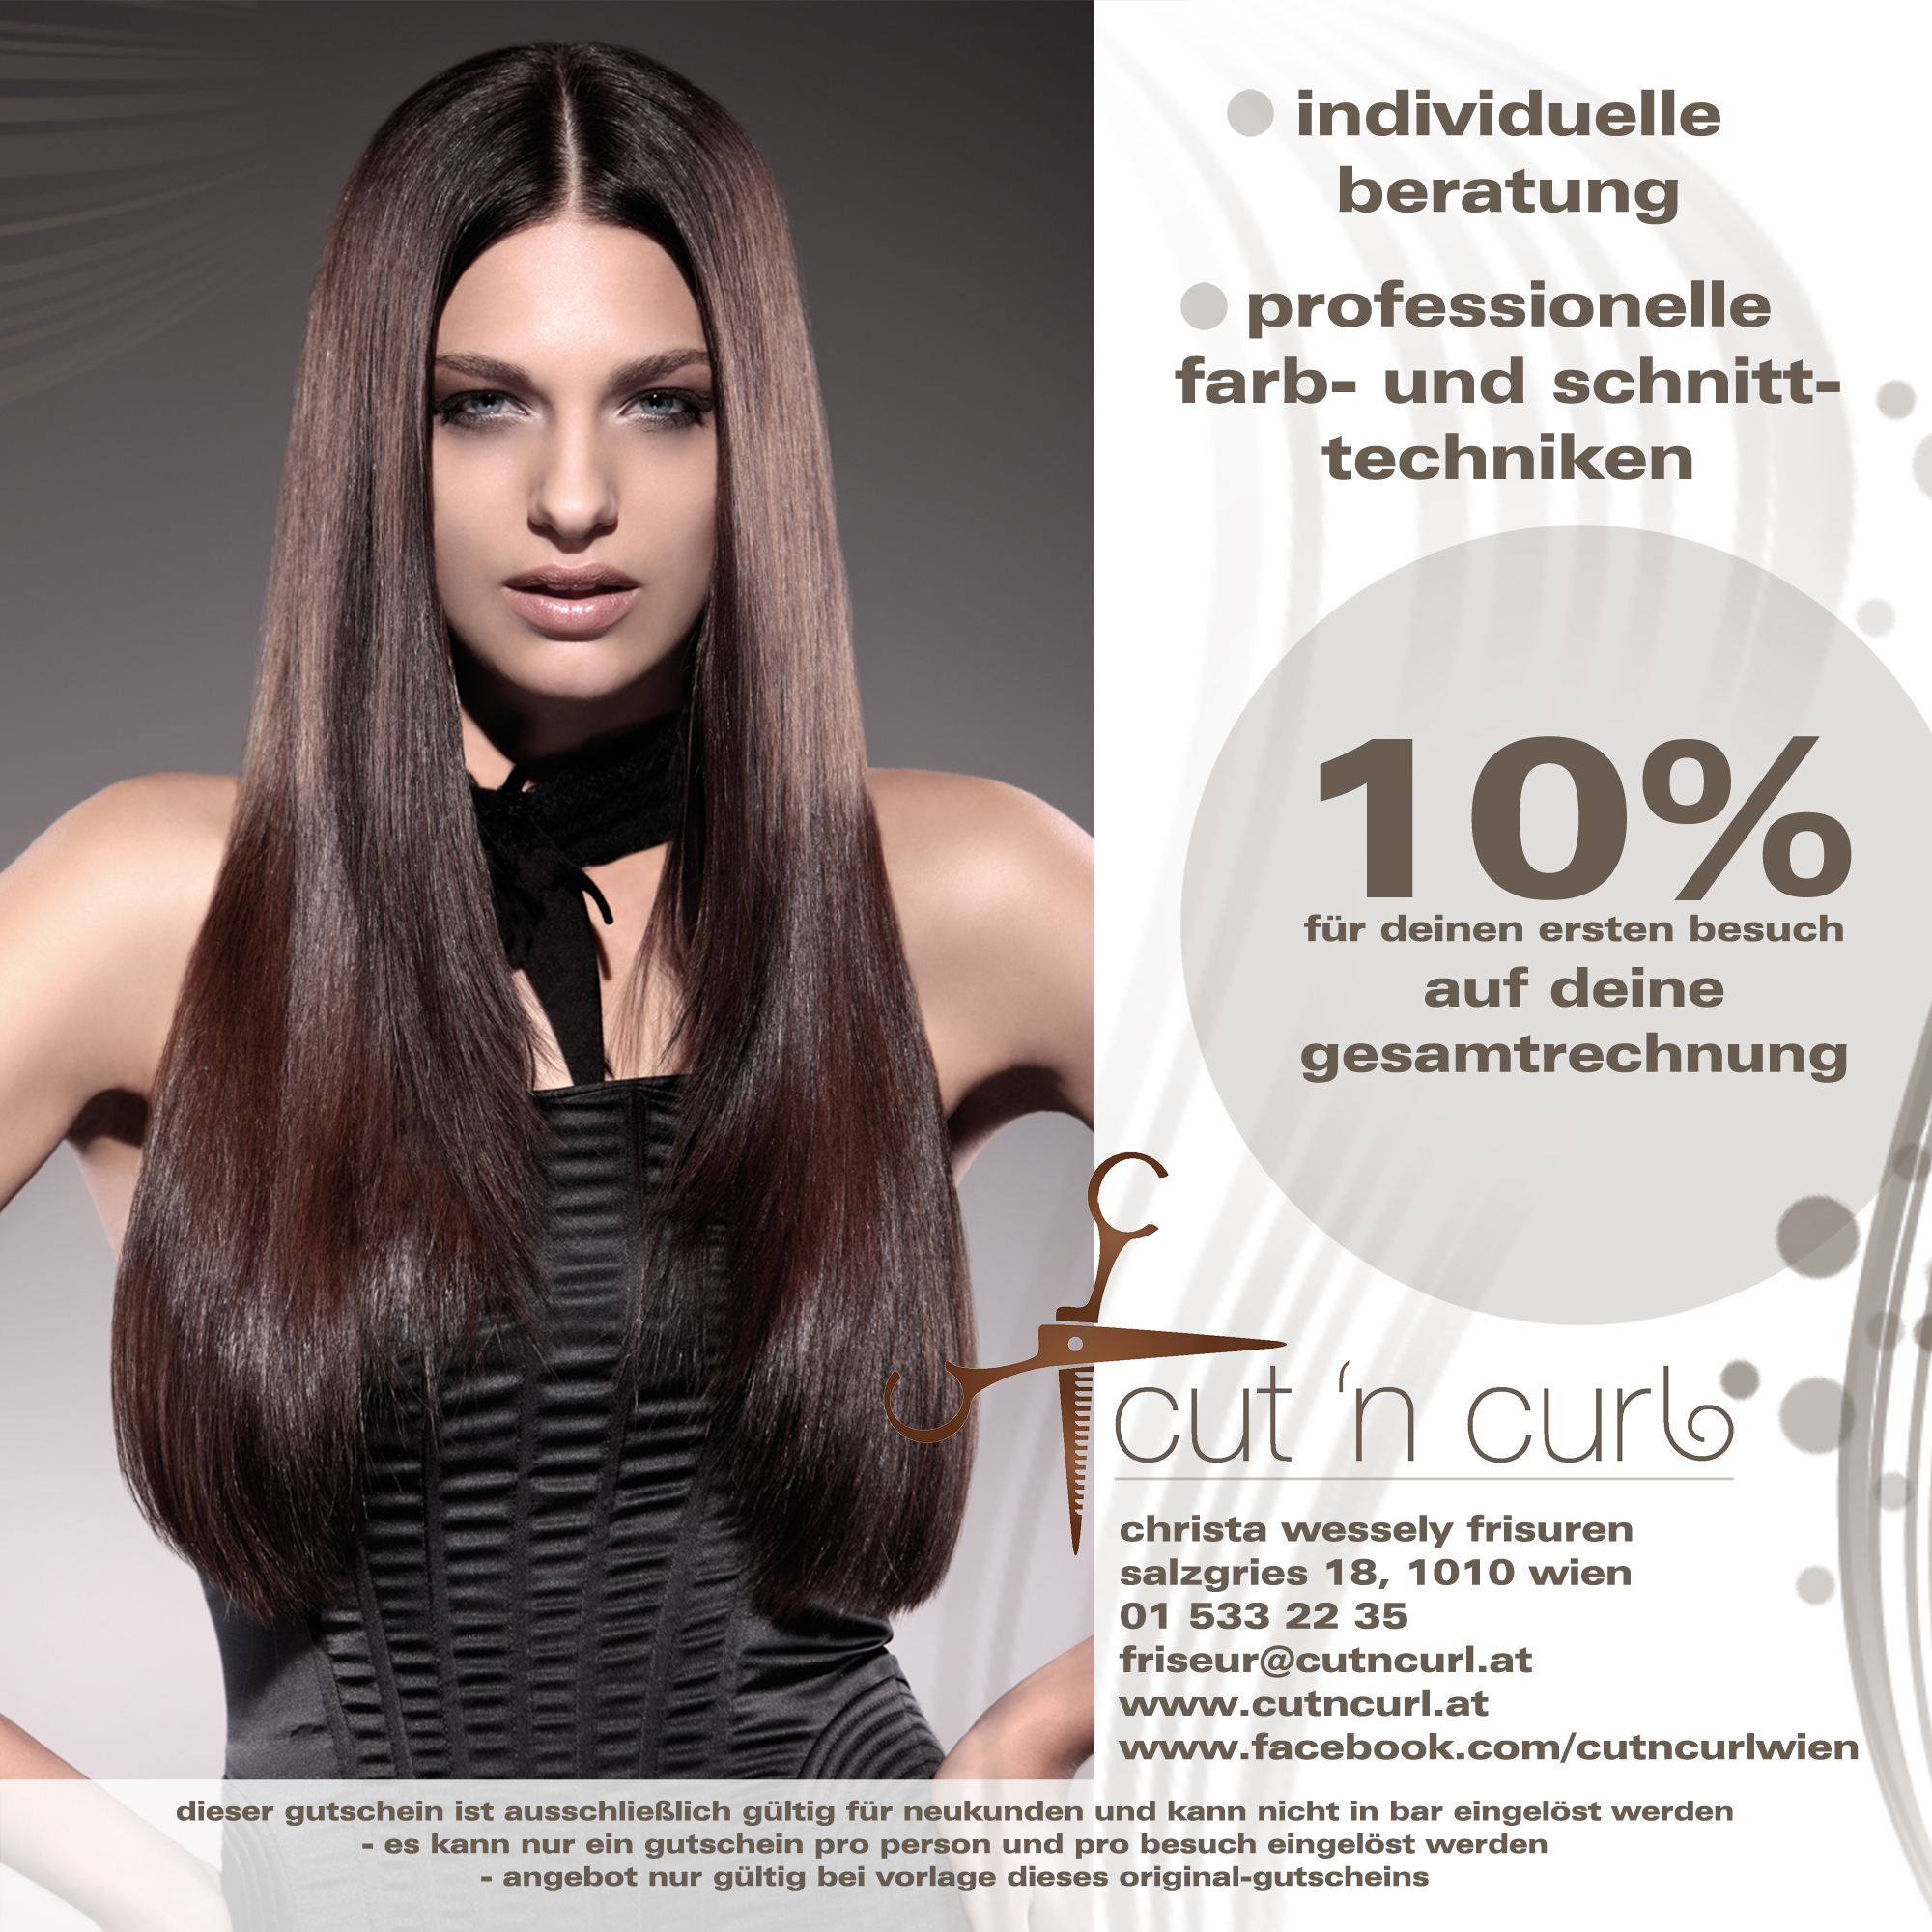 Flyer Design Für Friseursalon Flyer Design Designonclickcom